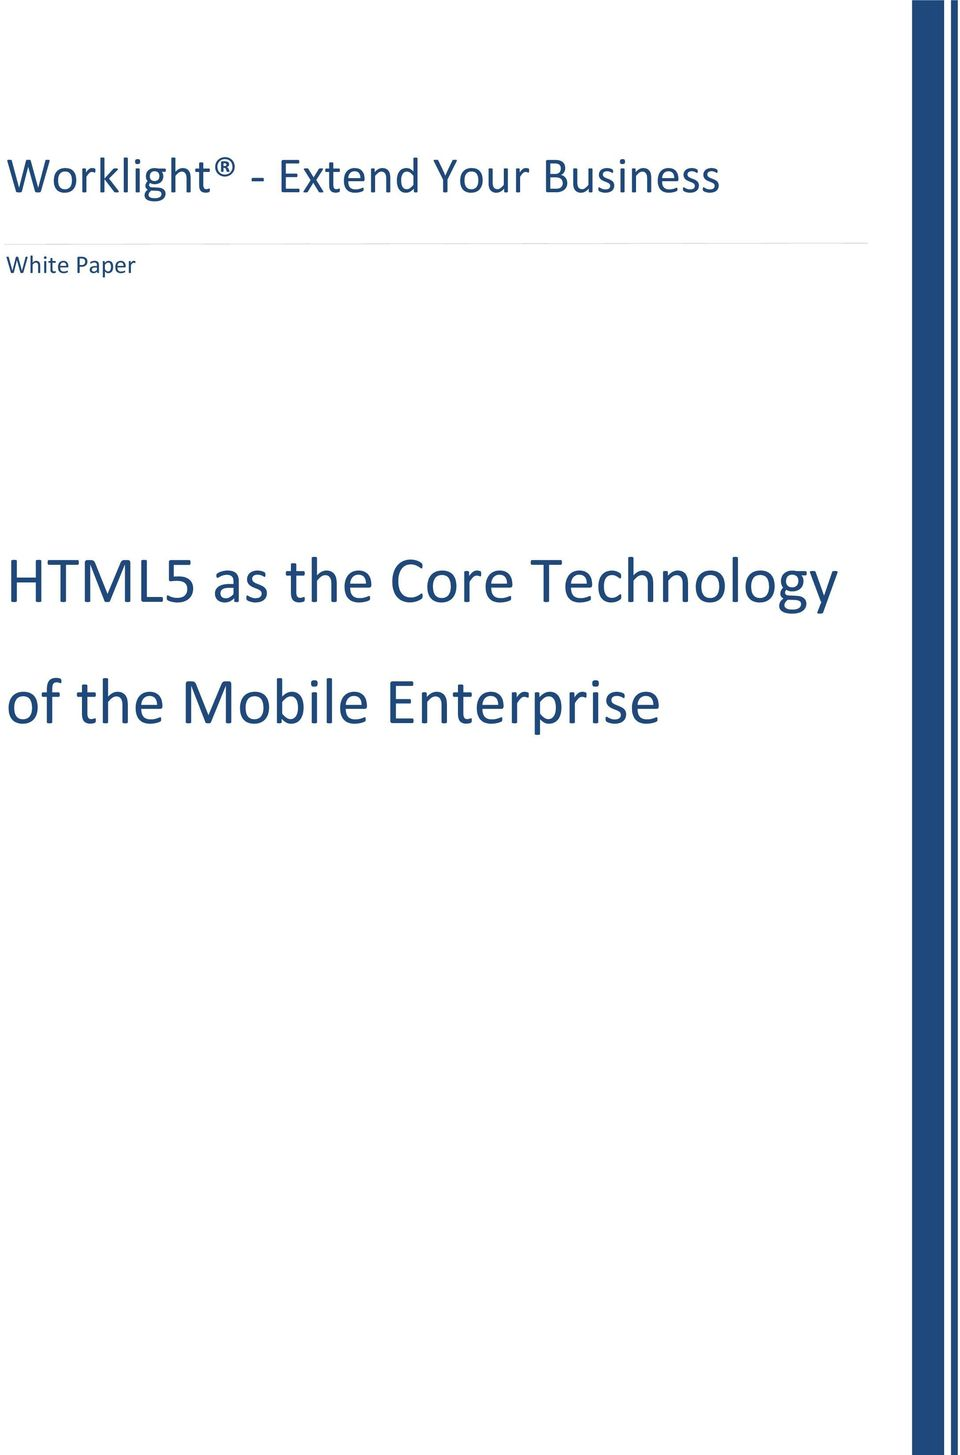 HTML5 as the Core